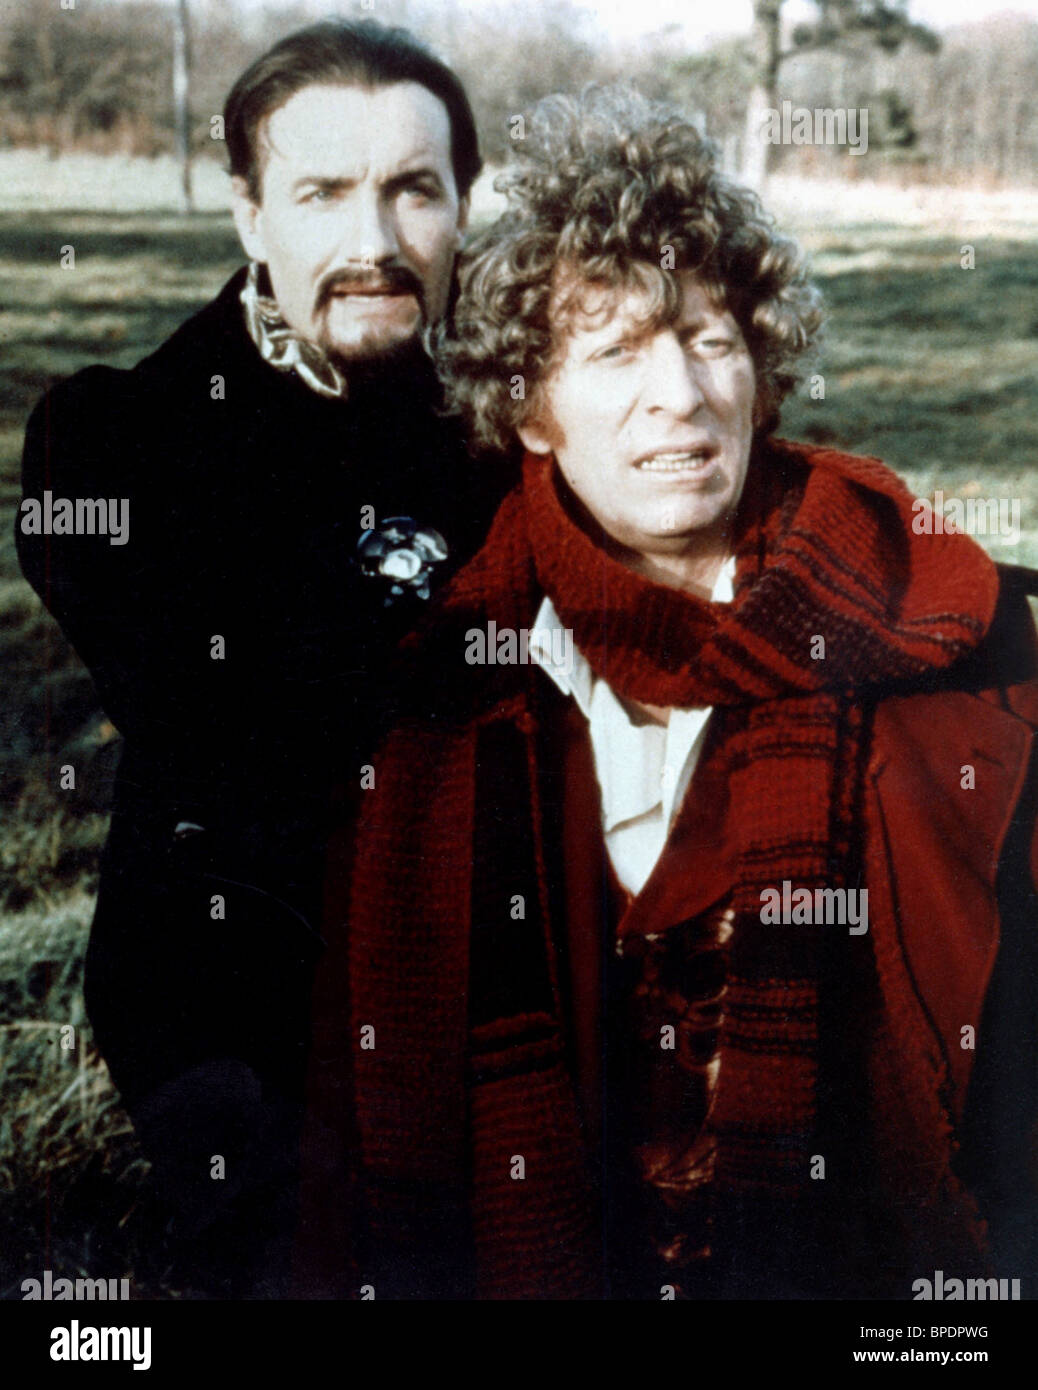 ANTHONY AINLEY & TOM BAKER DR WHO (1990) - Stock Image